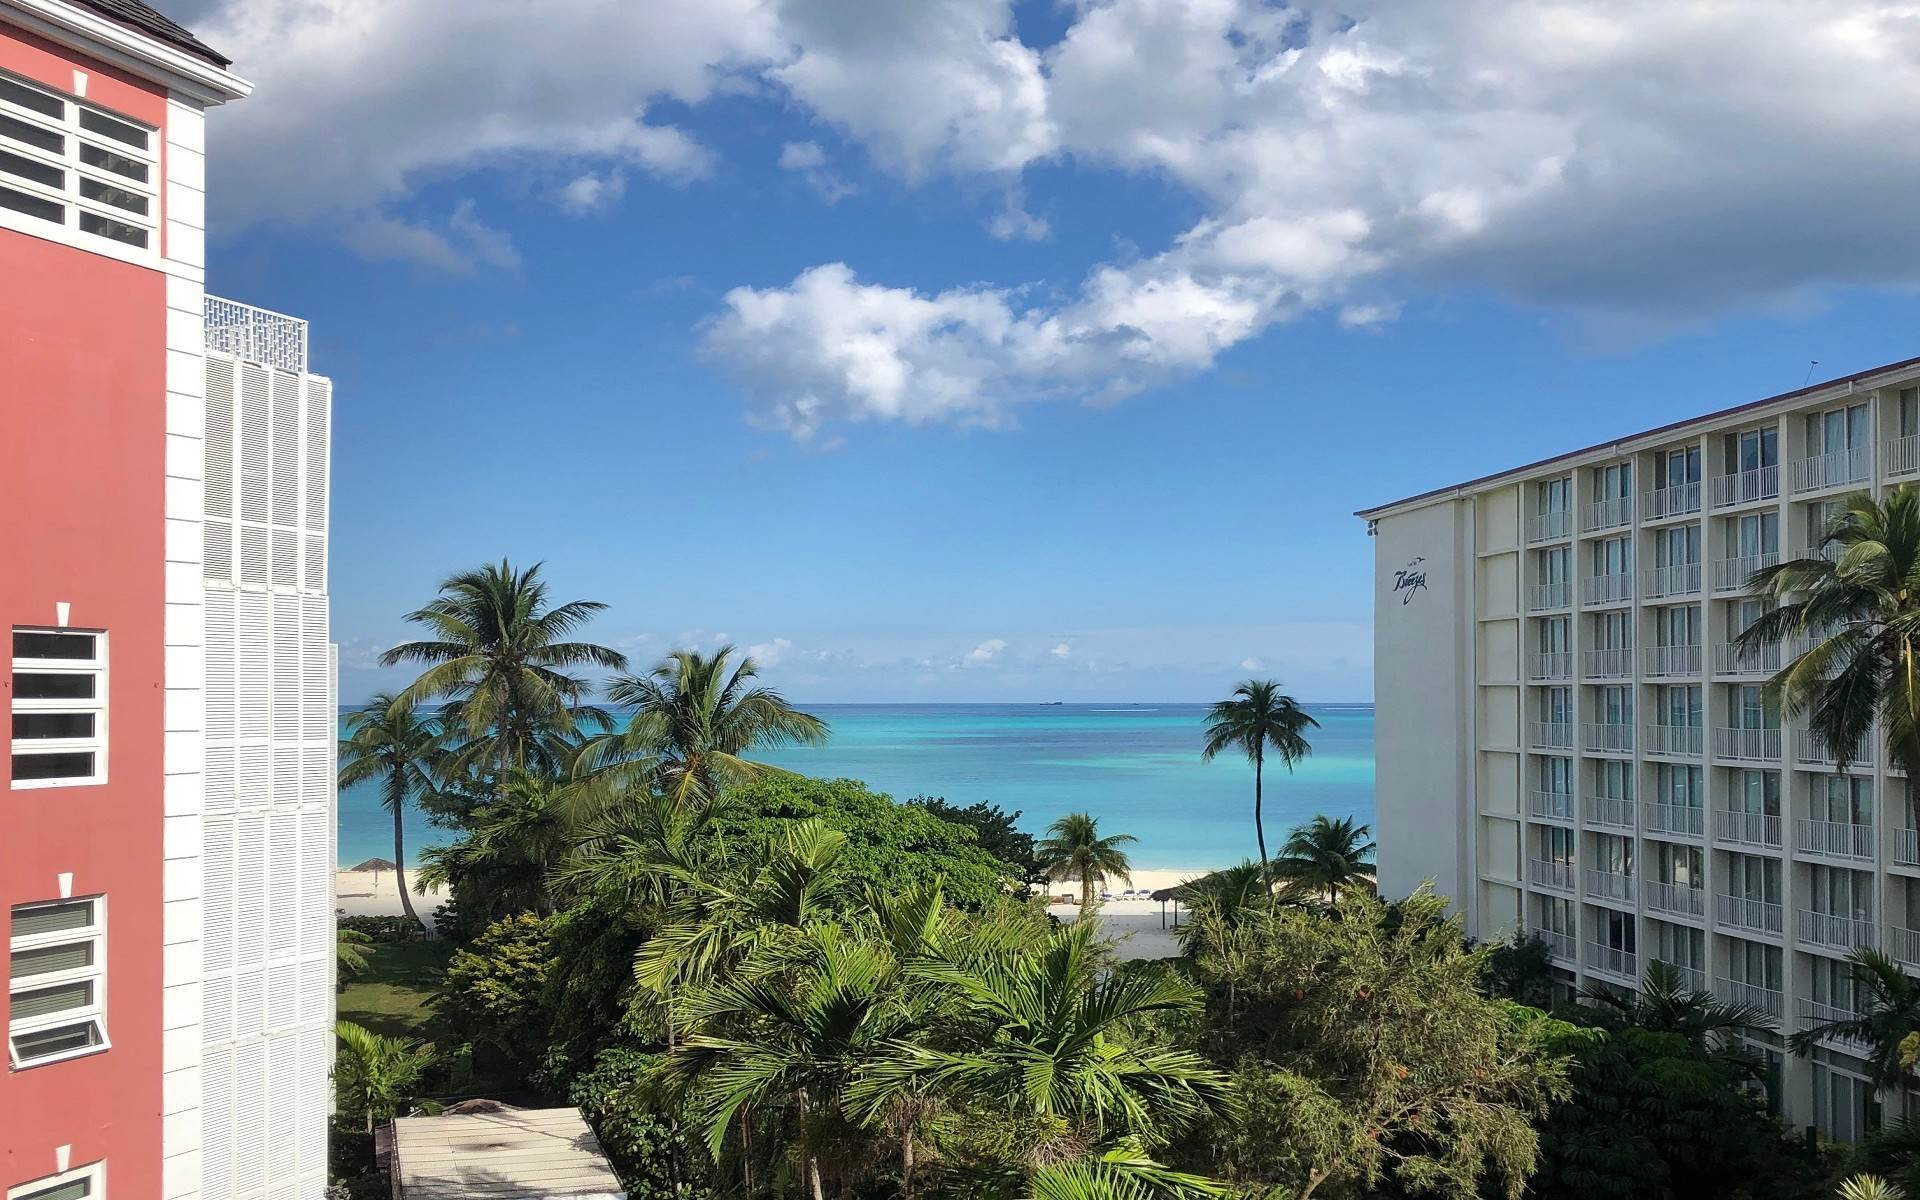 Co-op / Condo for Sale at Executive Style Unit with Sea View - MLS 44076 Sulgrave Manor, Cable Beach, Nassau And Paradise Island Bahamas